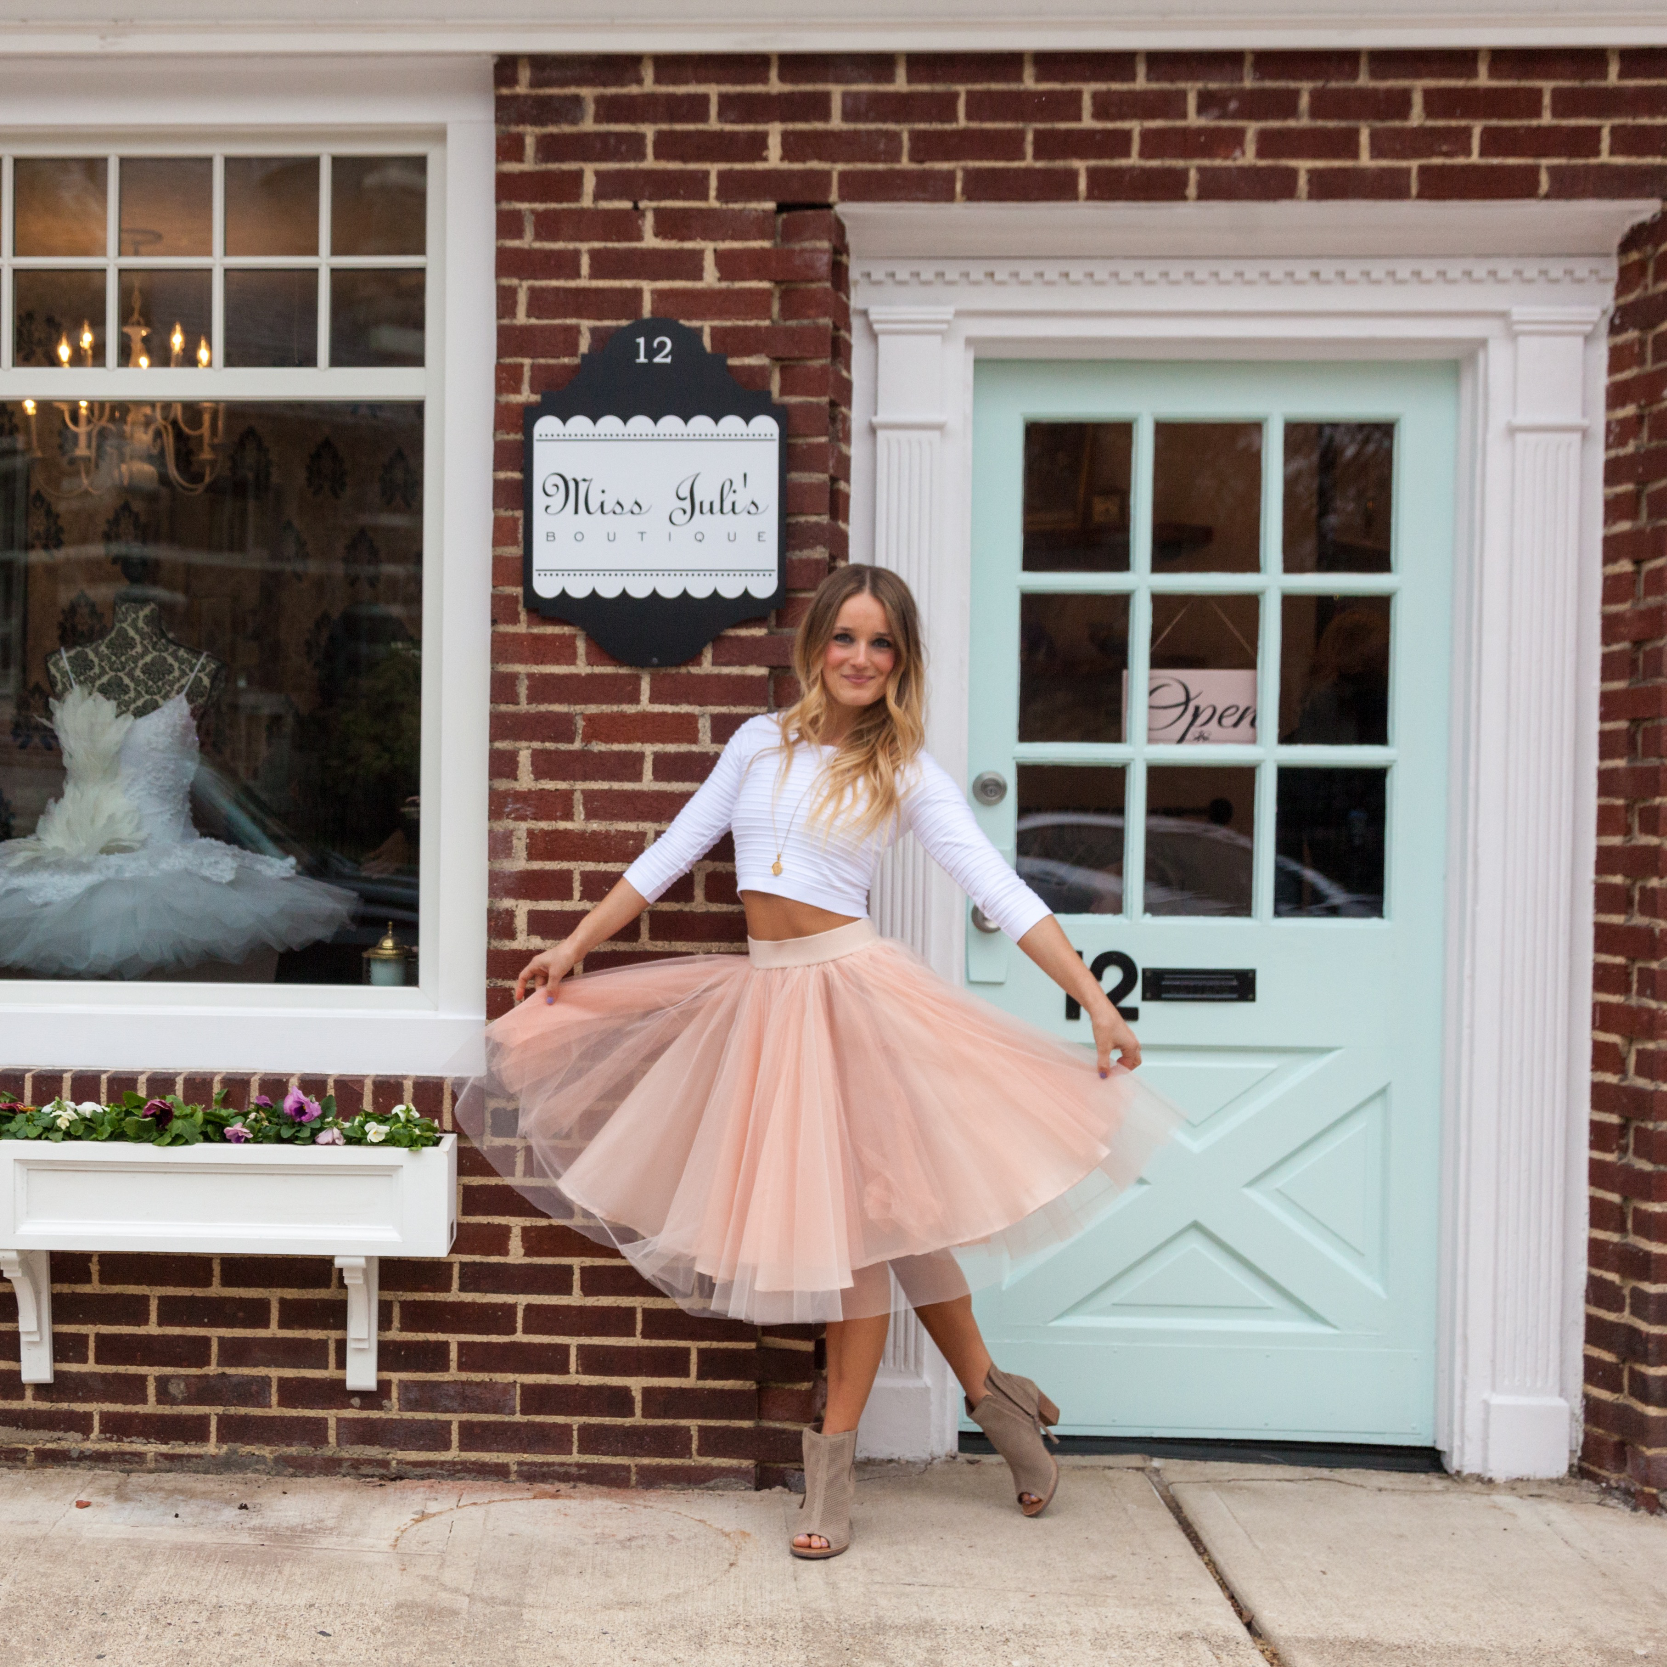 Miss Juli's Boutique in New Jersey